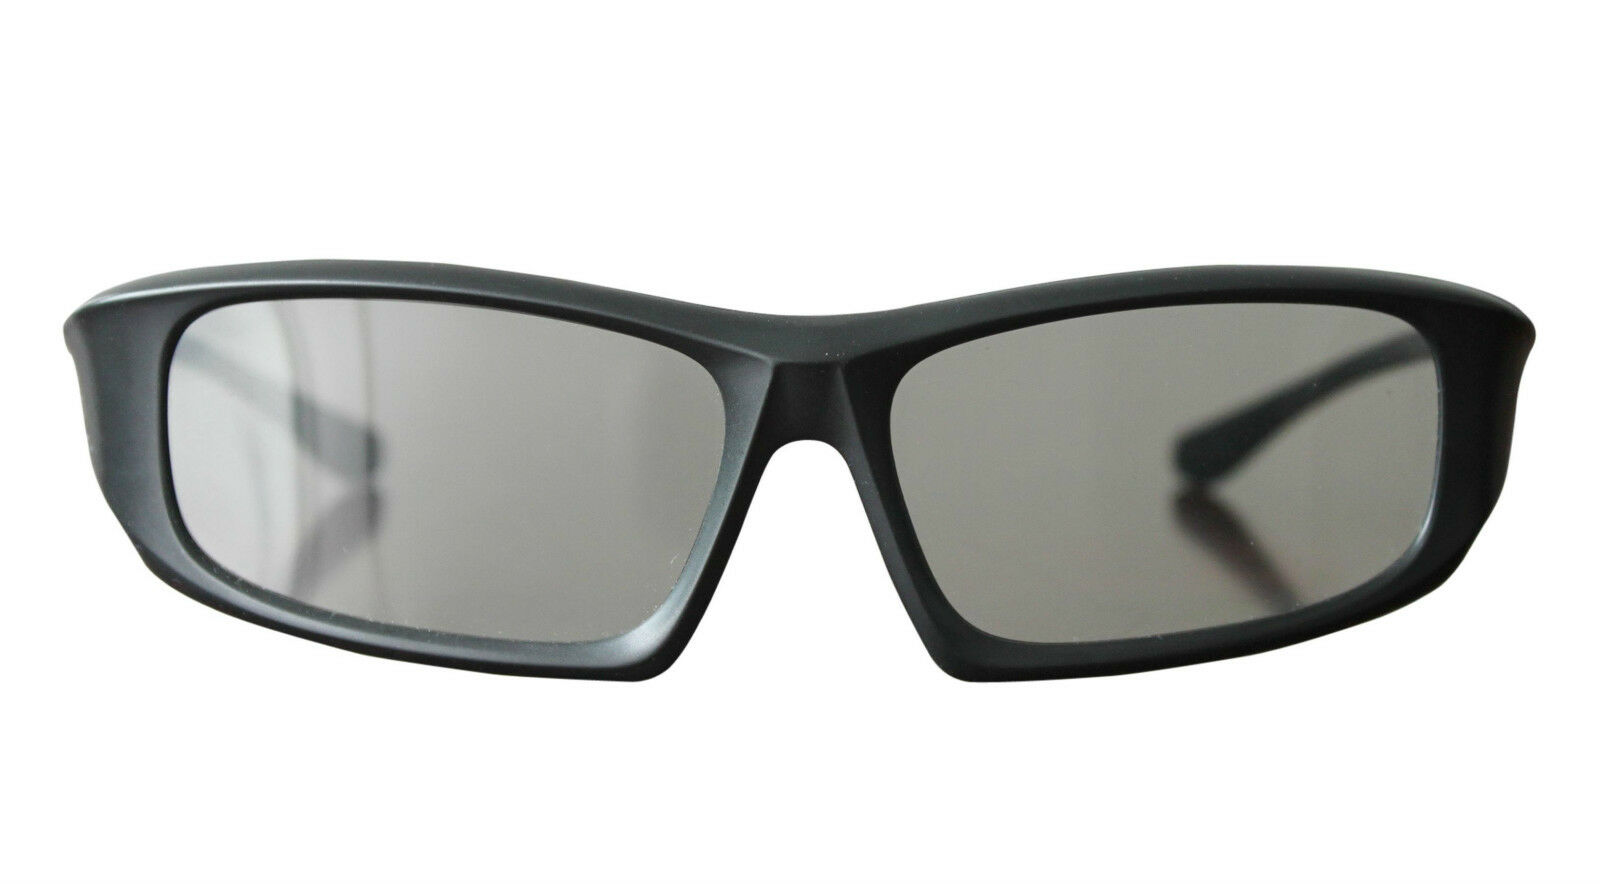 3d Glass Lg Cinema 3d Glass: 2 Pairs High Quality Adults Passive 3D Glasses Sky Sony